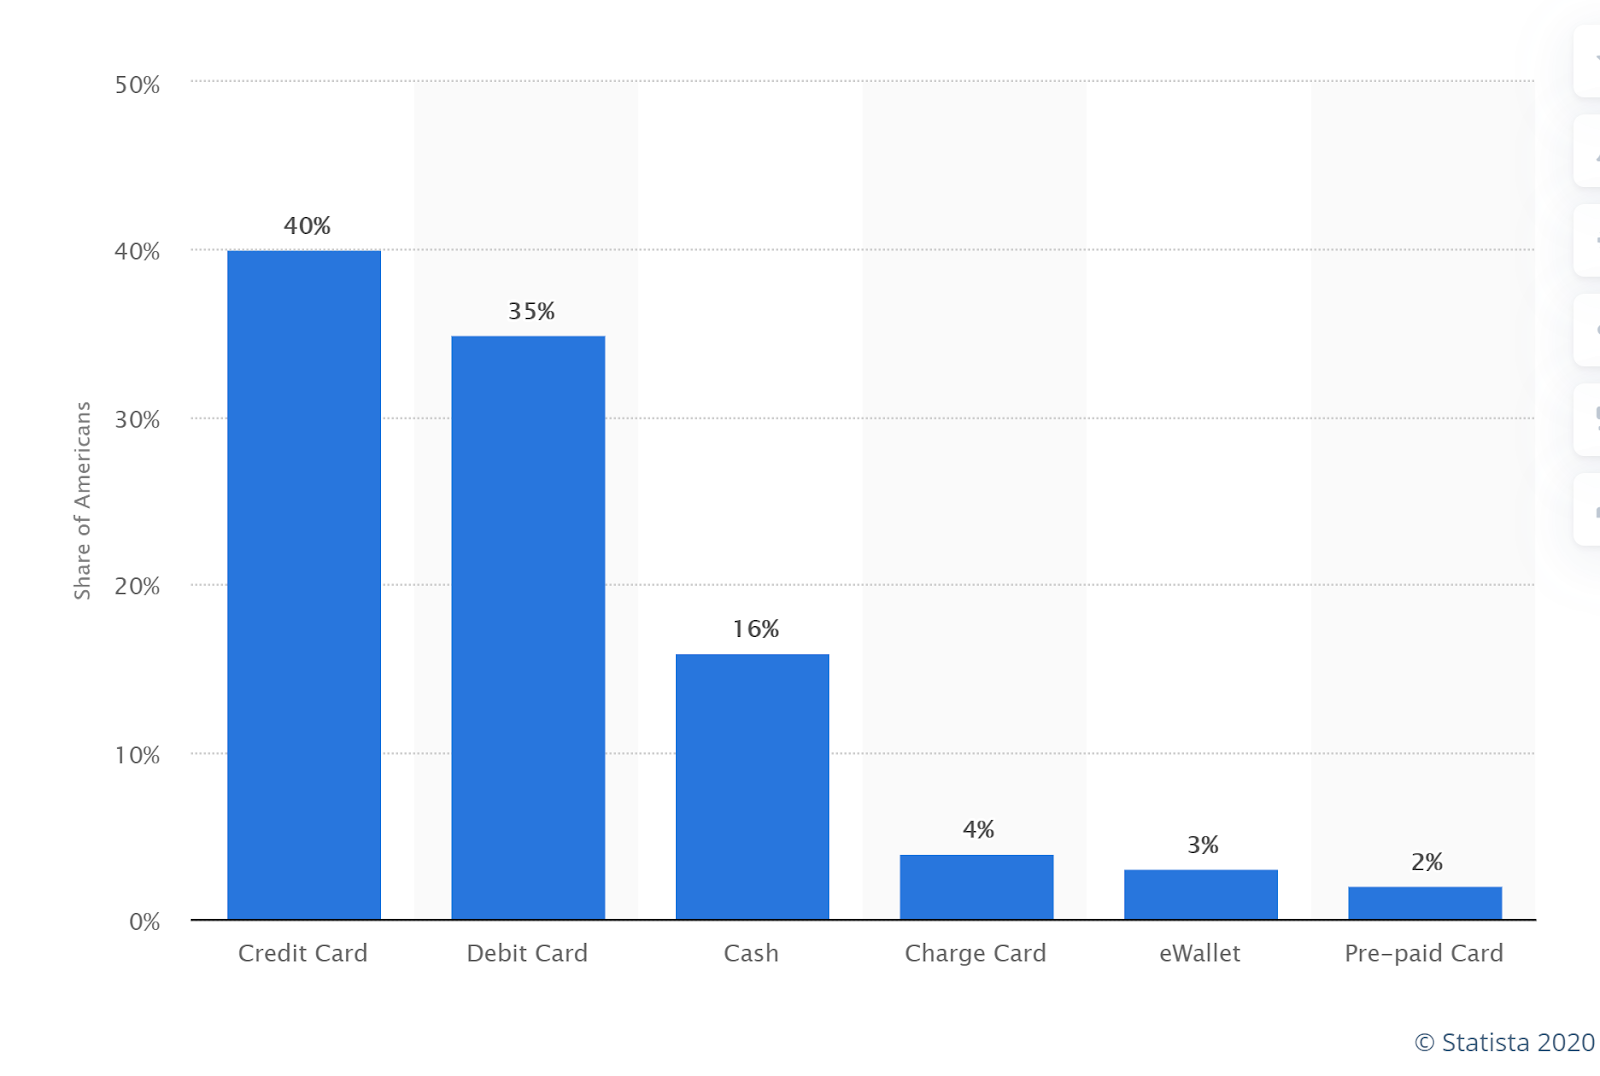 average usage rate of credit cards